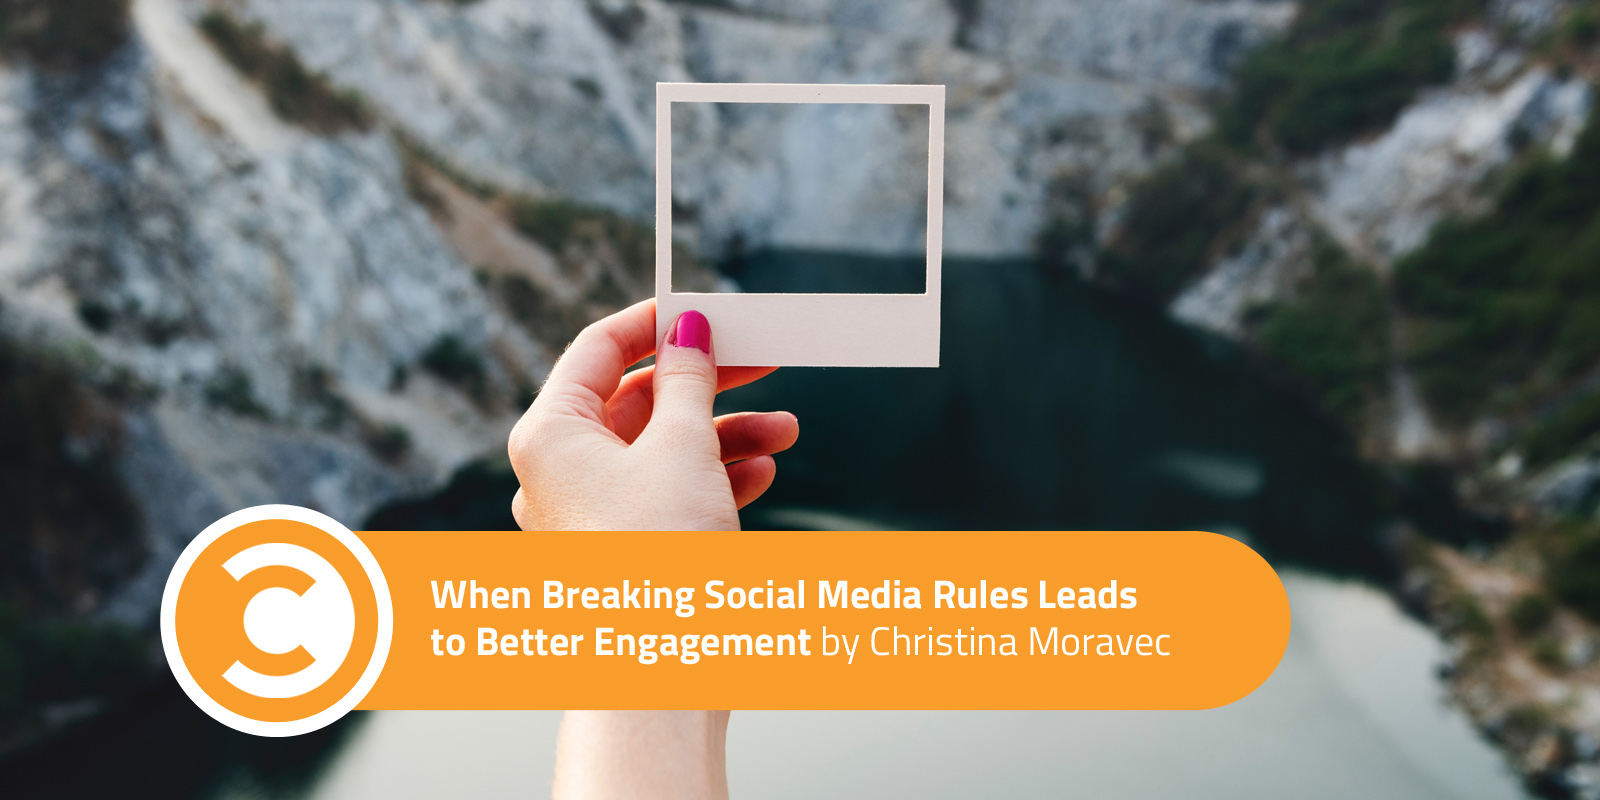 When Breaking Social Media Rules Leads to Better Engagement